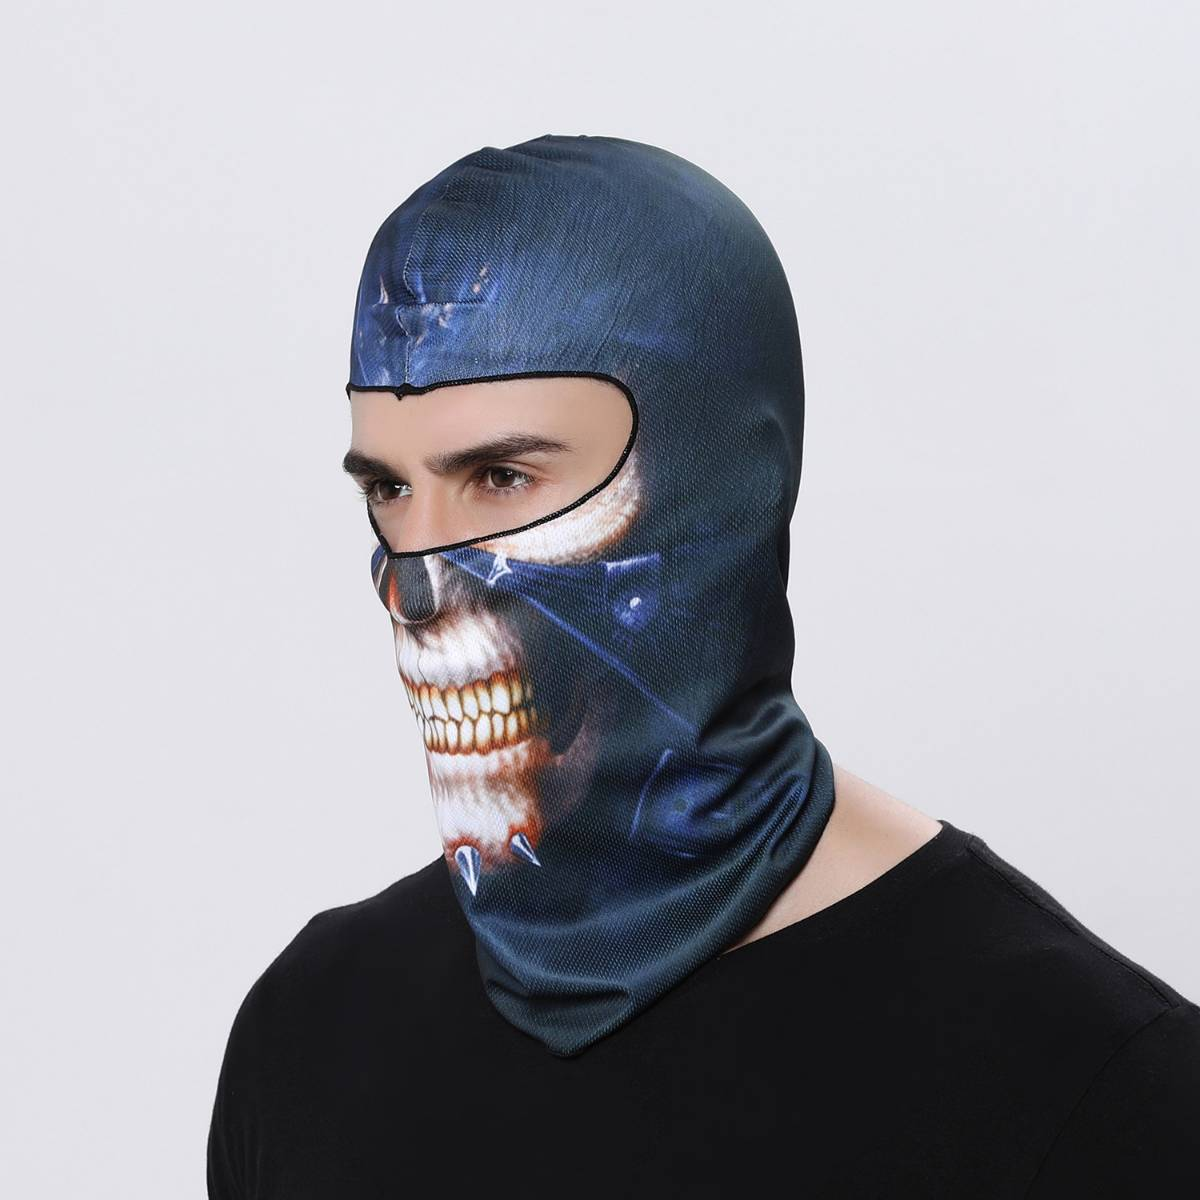 Masker Motor / Sepeda / Olah Raga Balaclava Motif 04